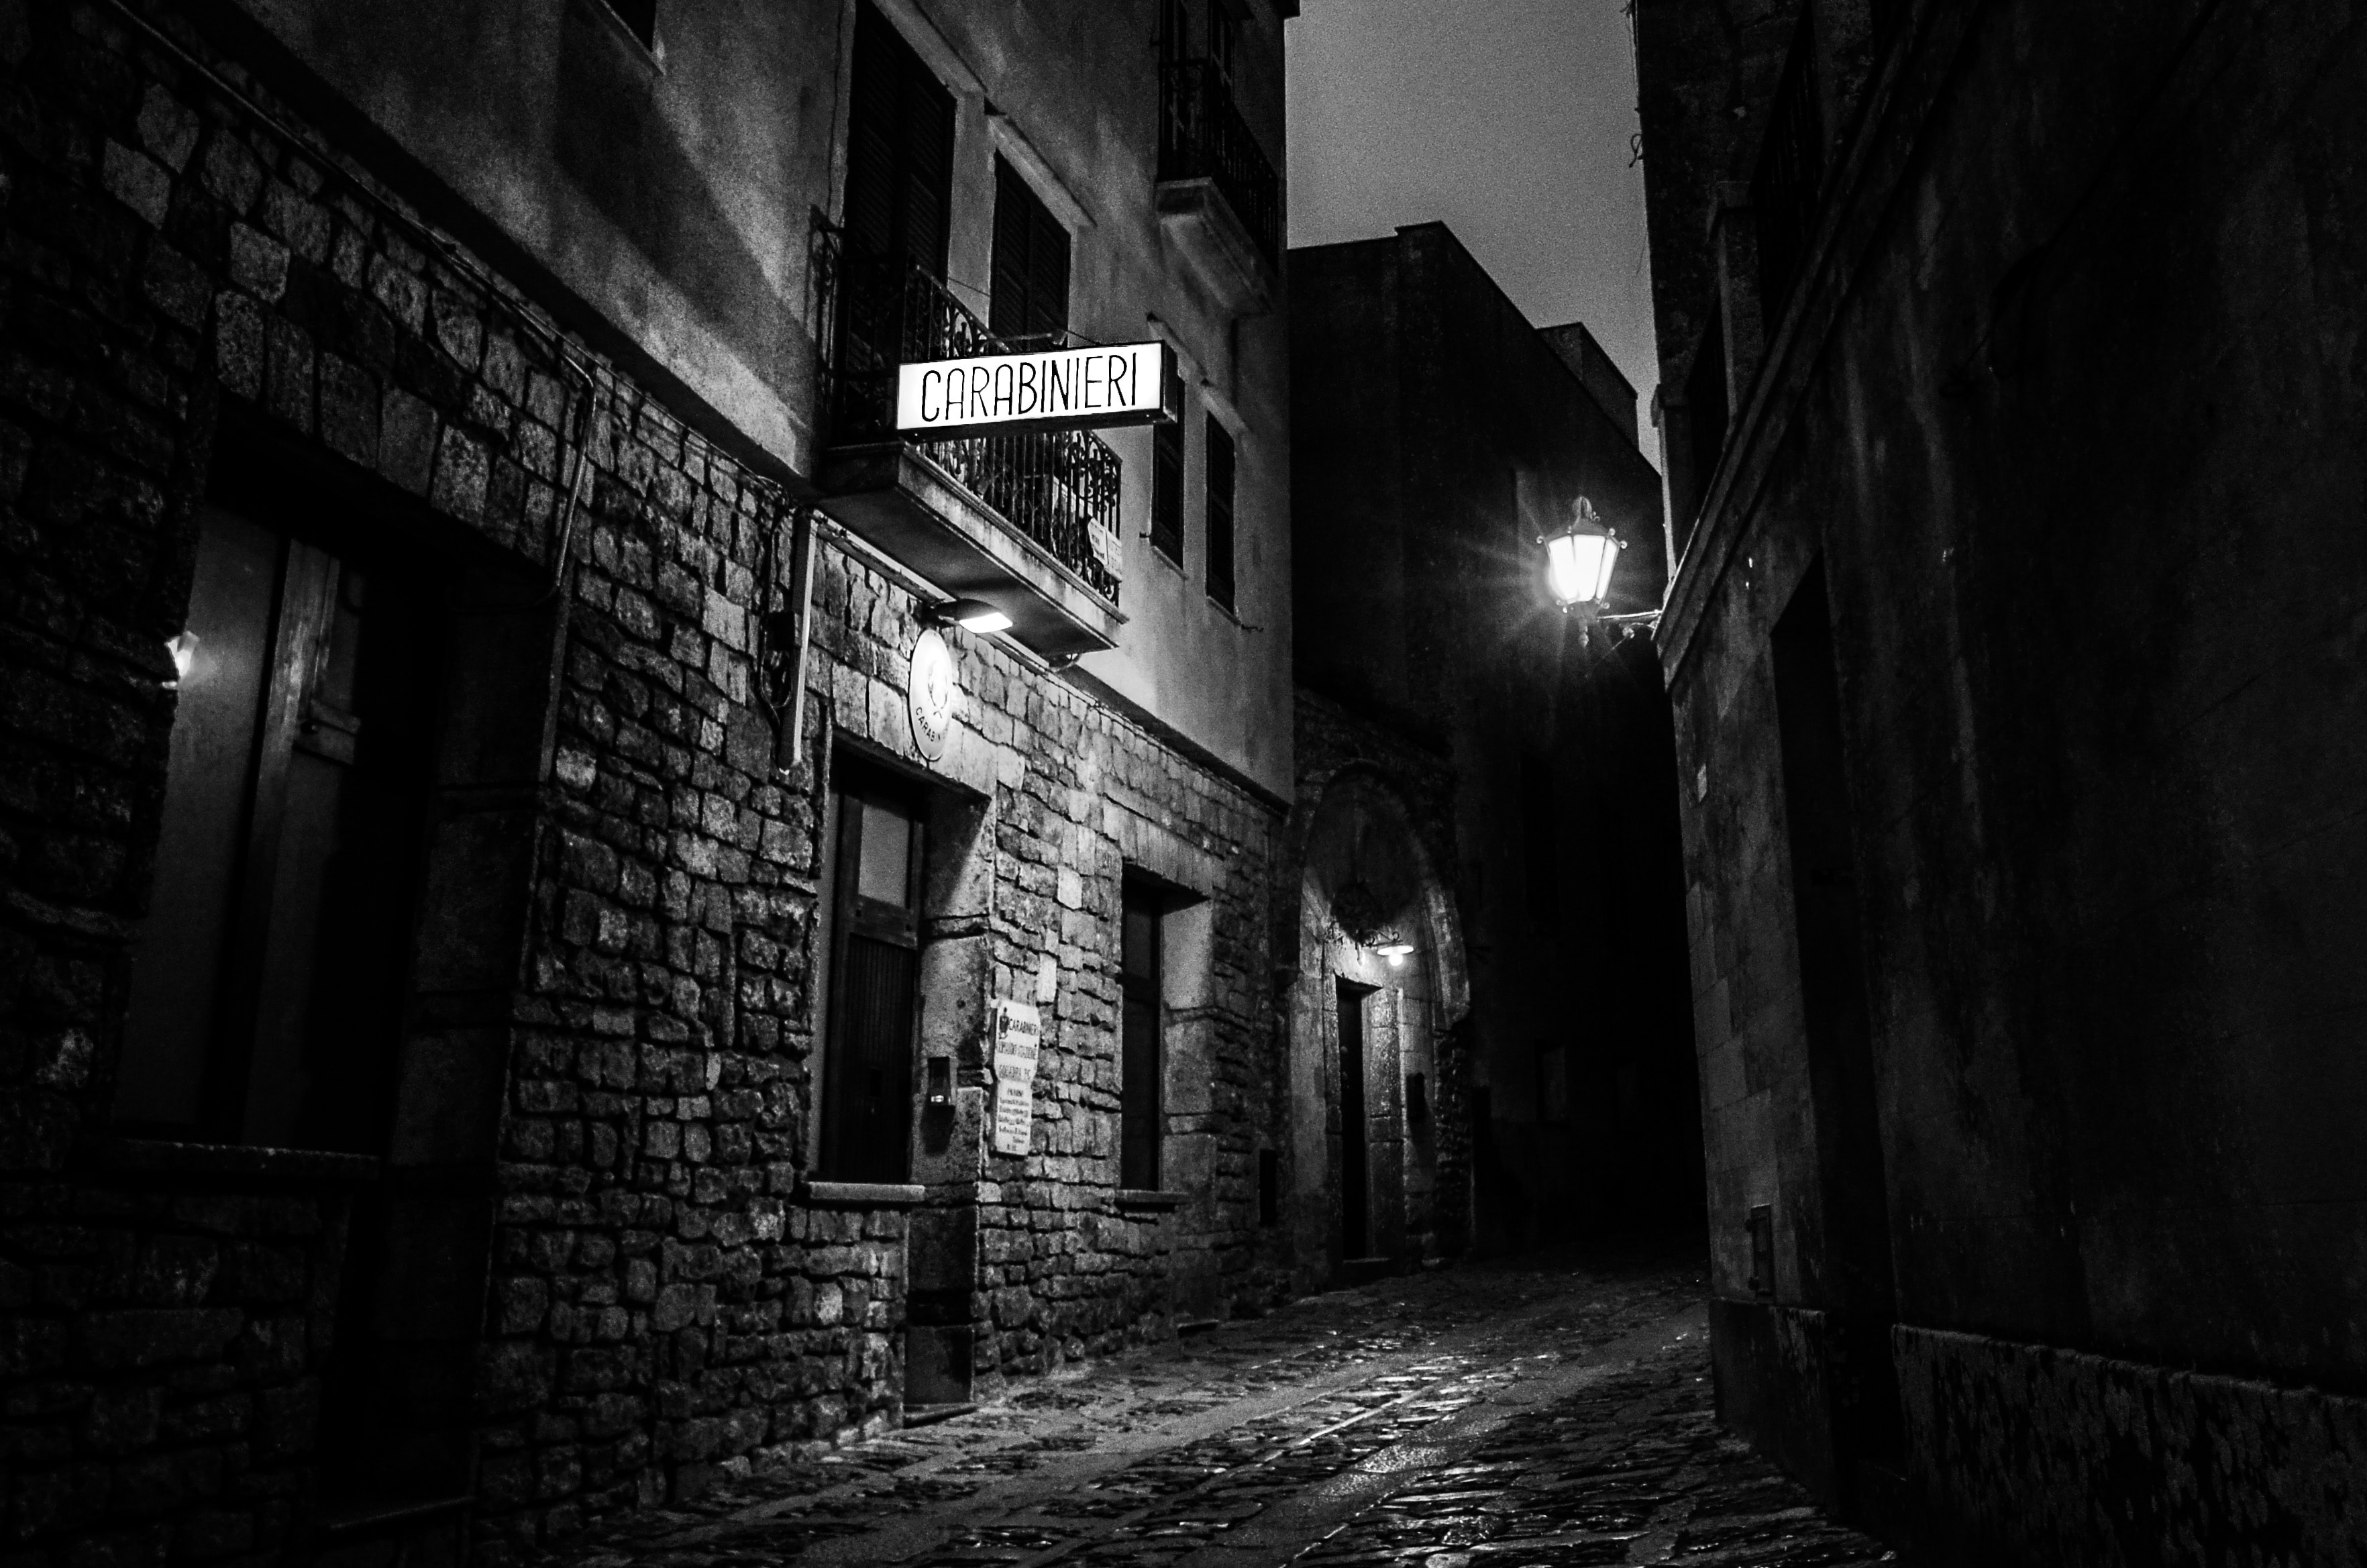 city alleyway with Carabineri signage during nighttime